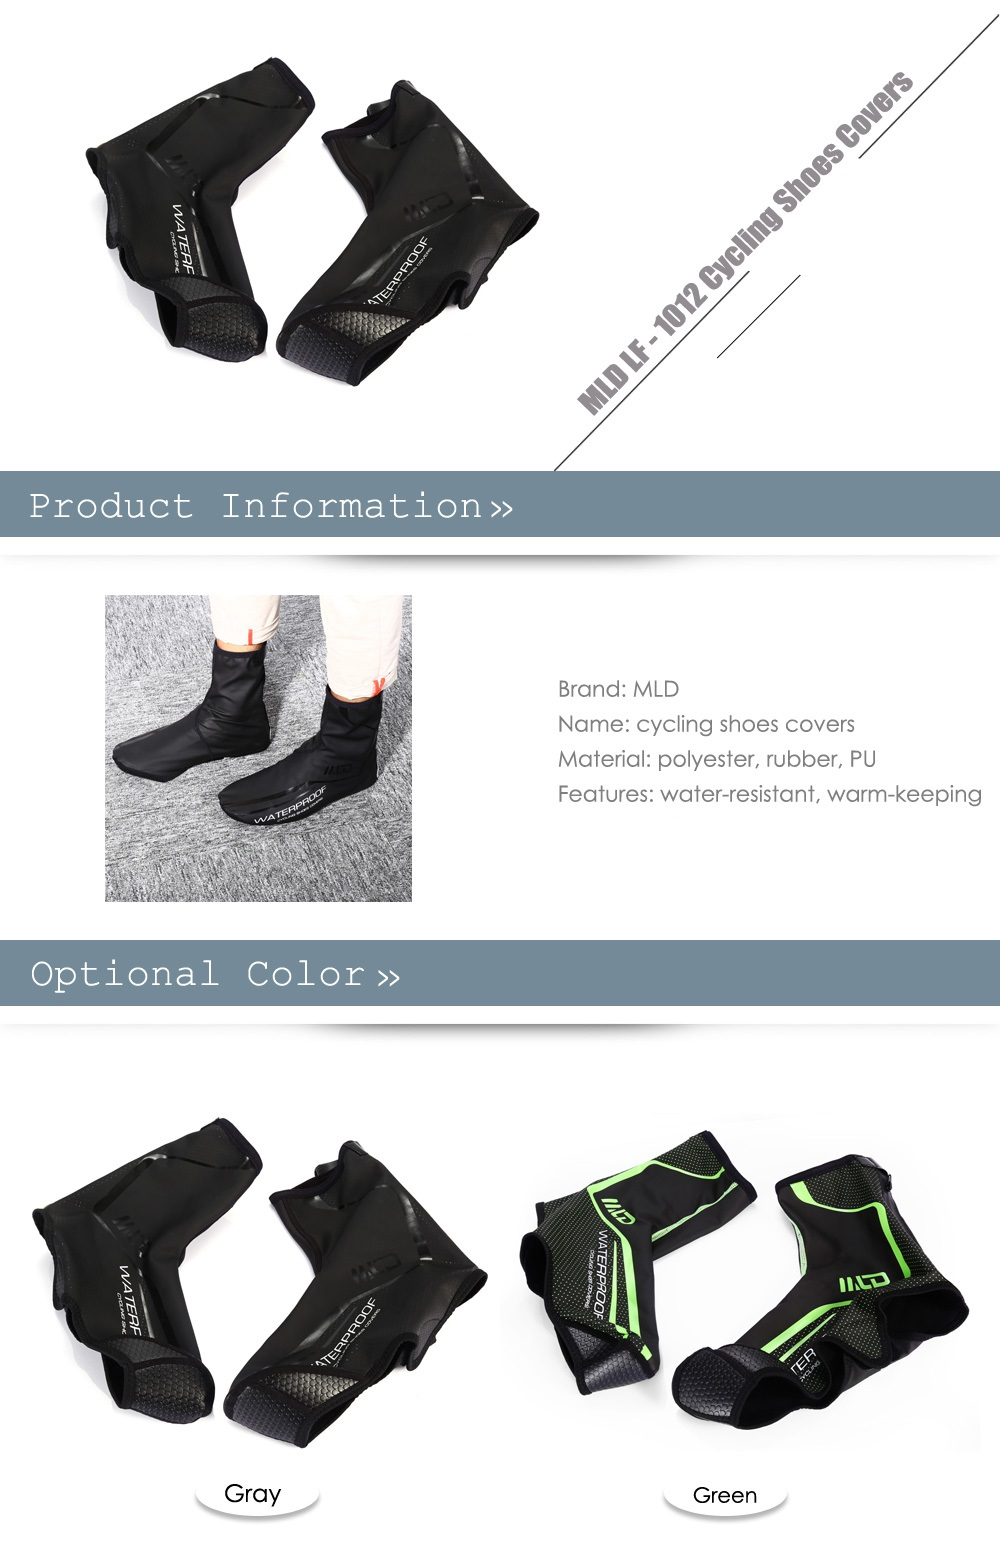 MLD LF - 1012 Water Resistant Warm-keeping Cycling Shoes Covers with Reflective Design